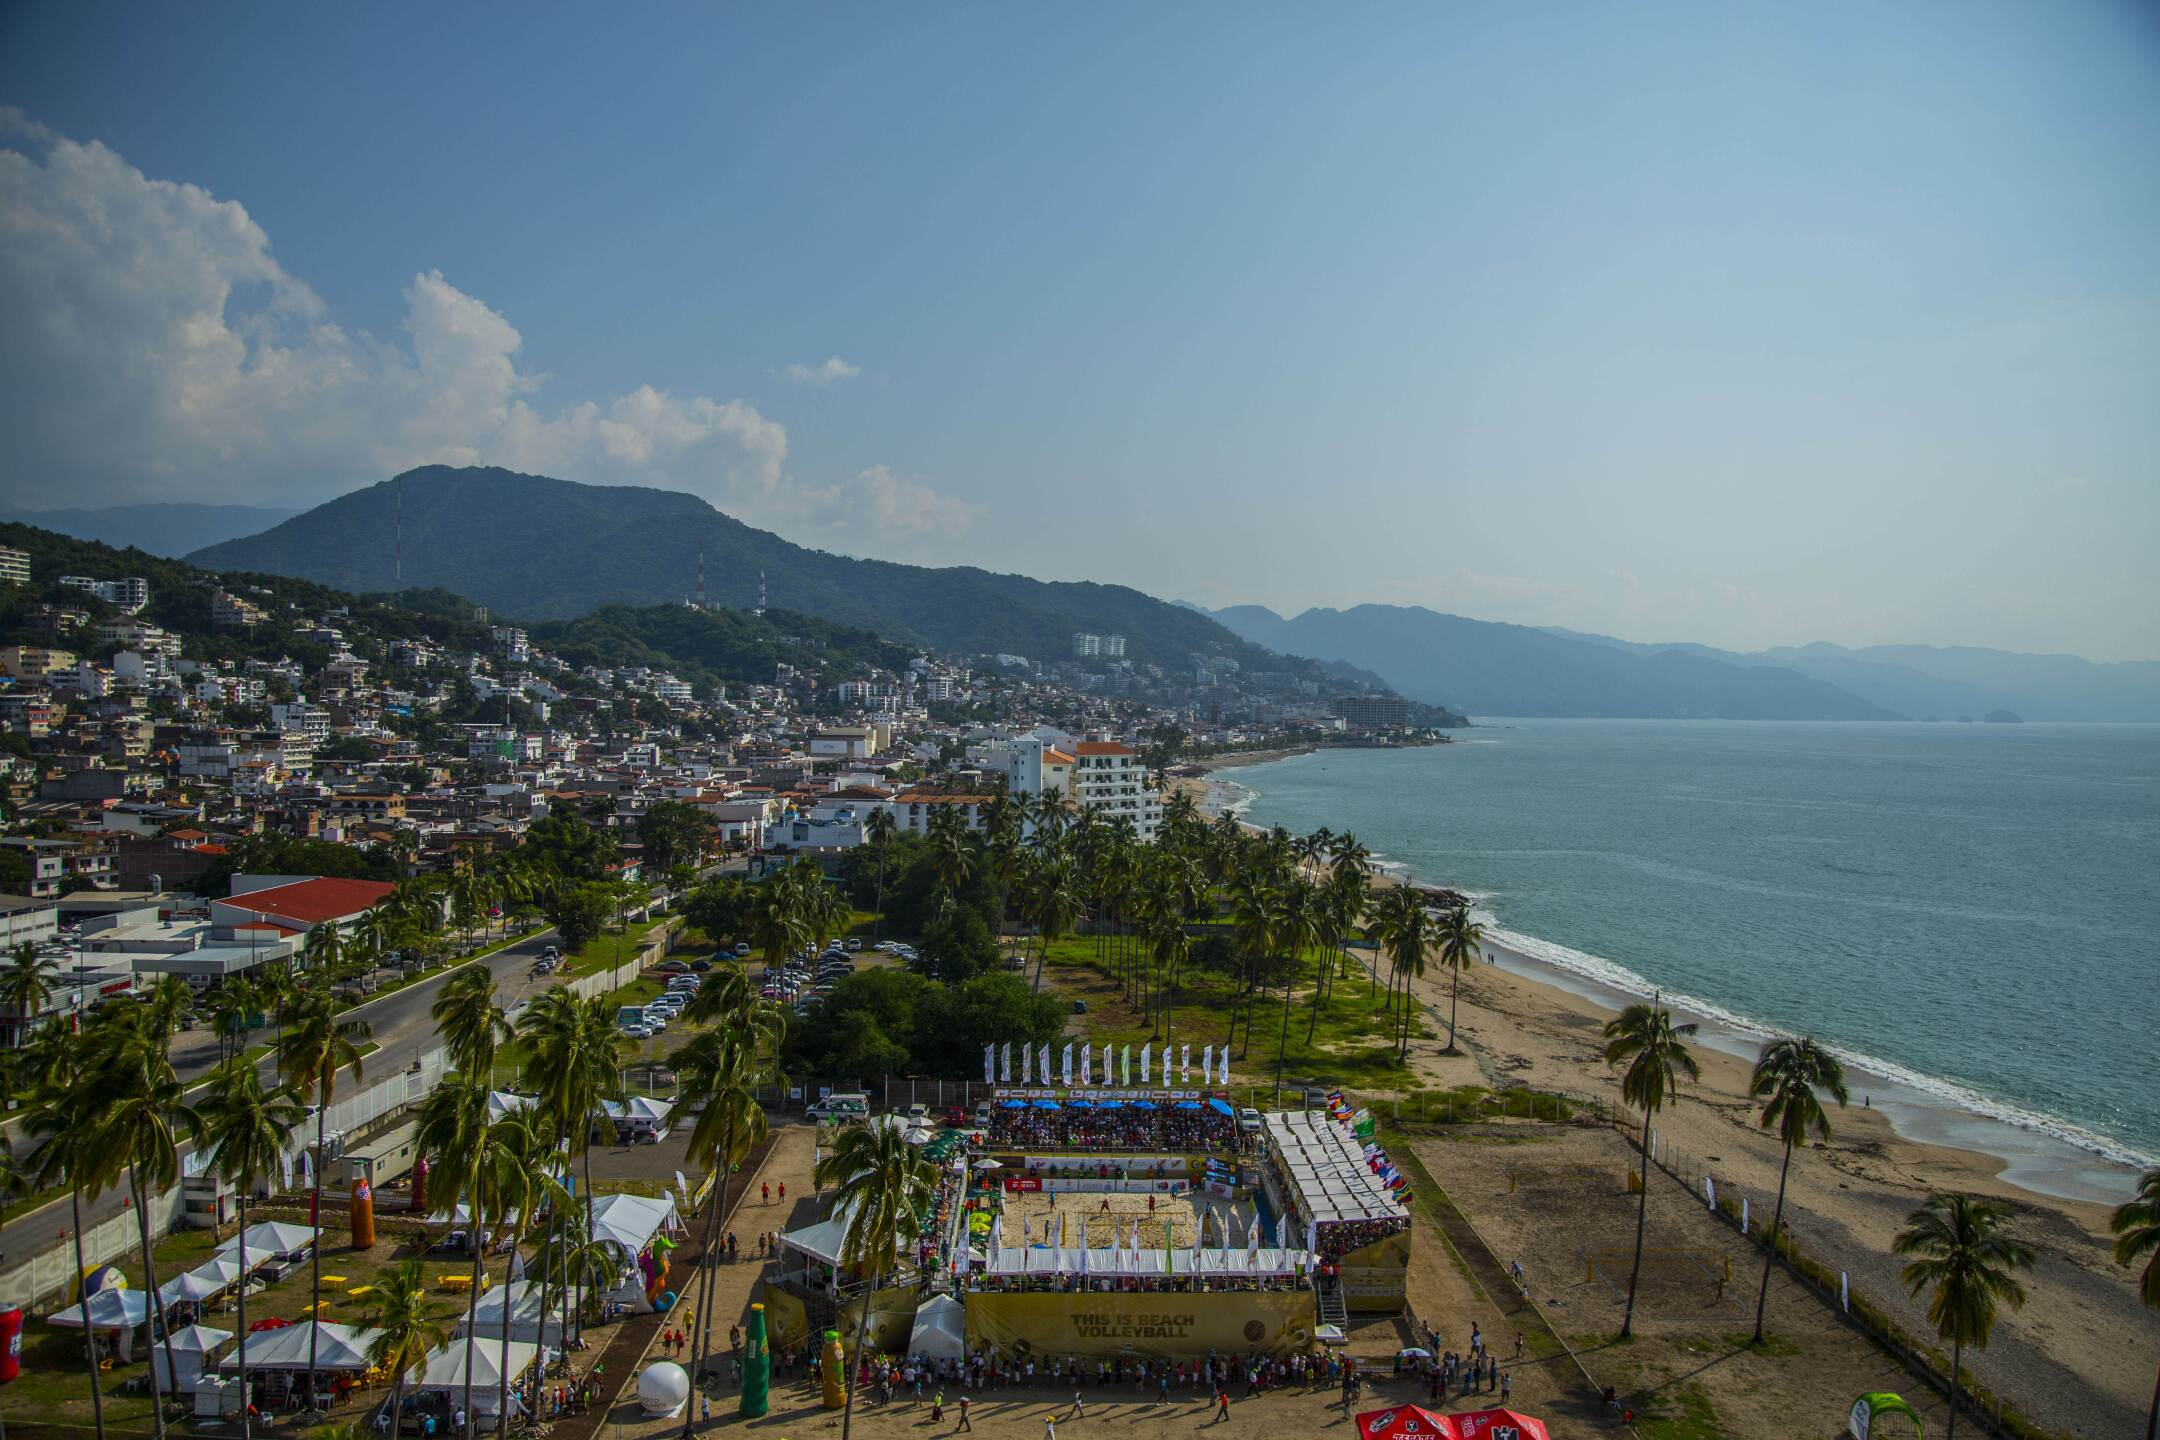 Overview of Puerto Vallarta, Mexico